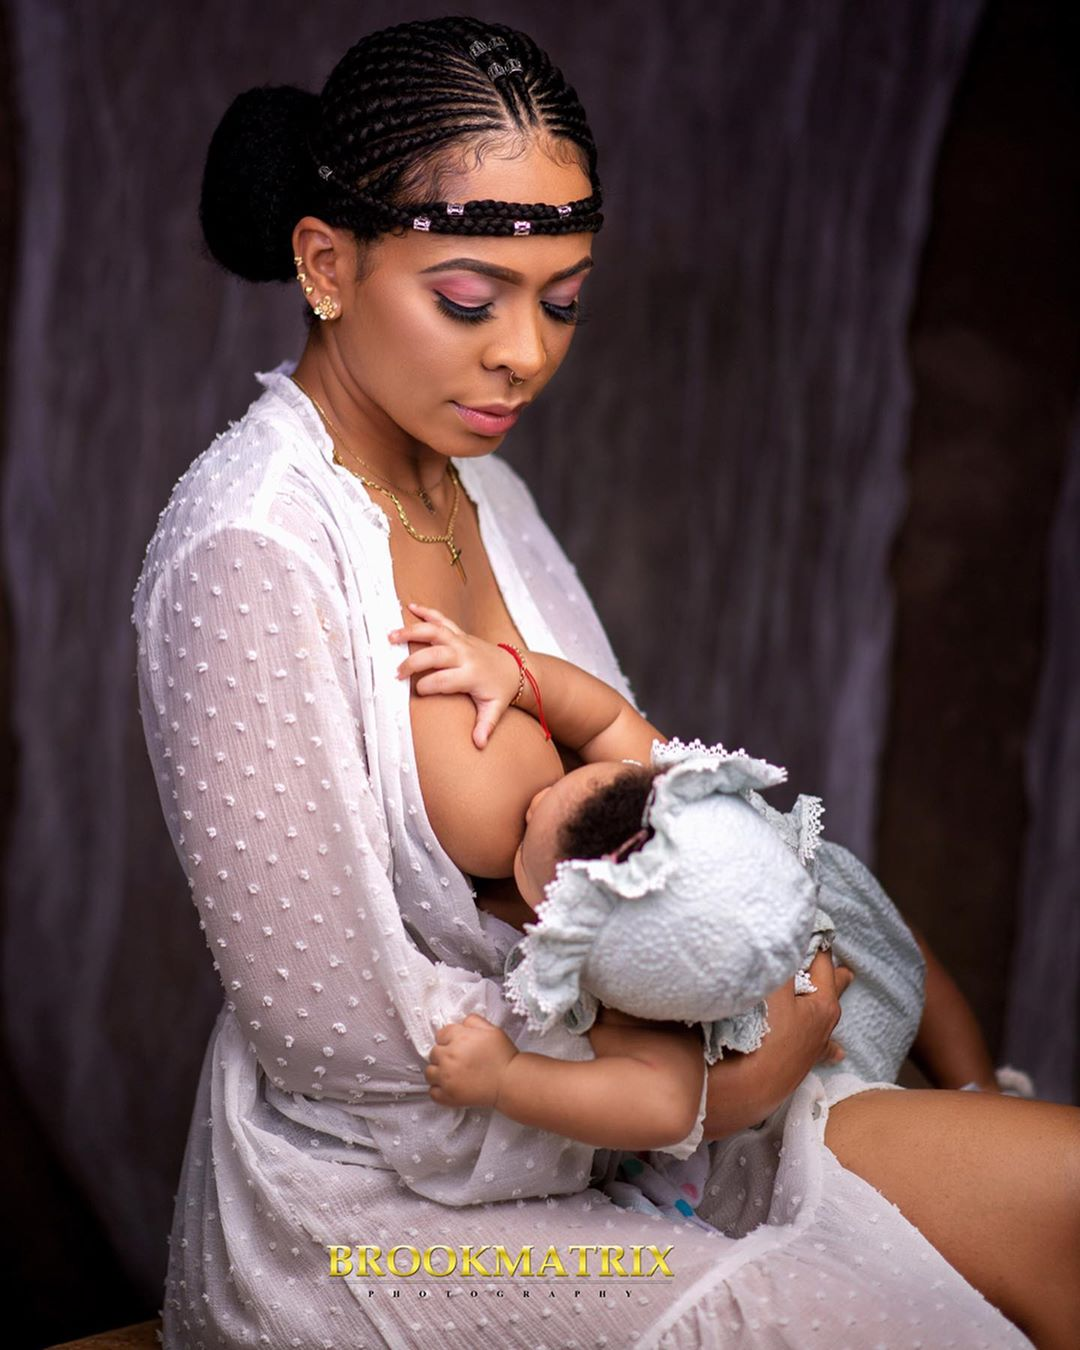 Proud Mother, Tboss 'breastfeeds' her daughter in new adorable photos